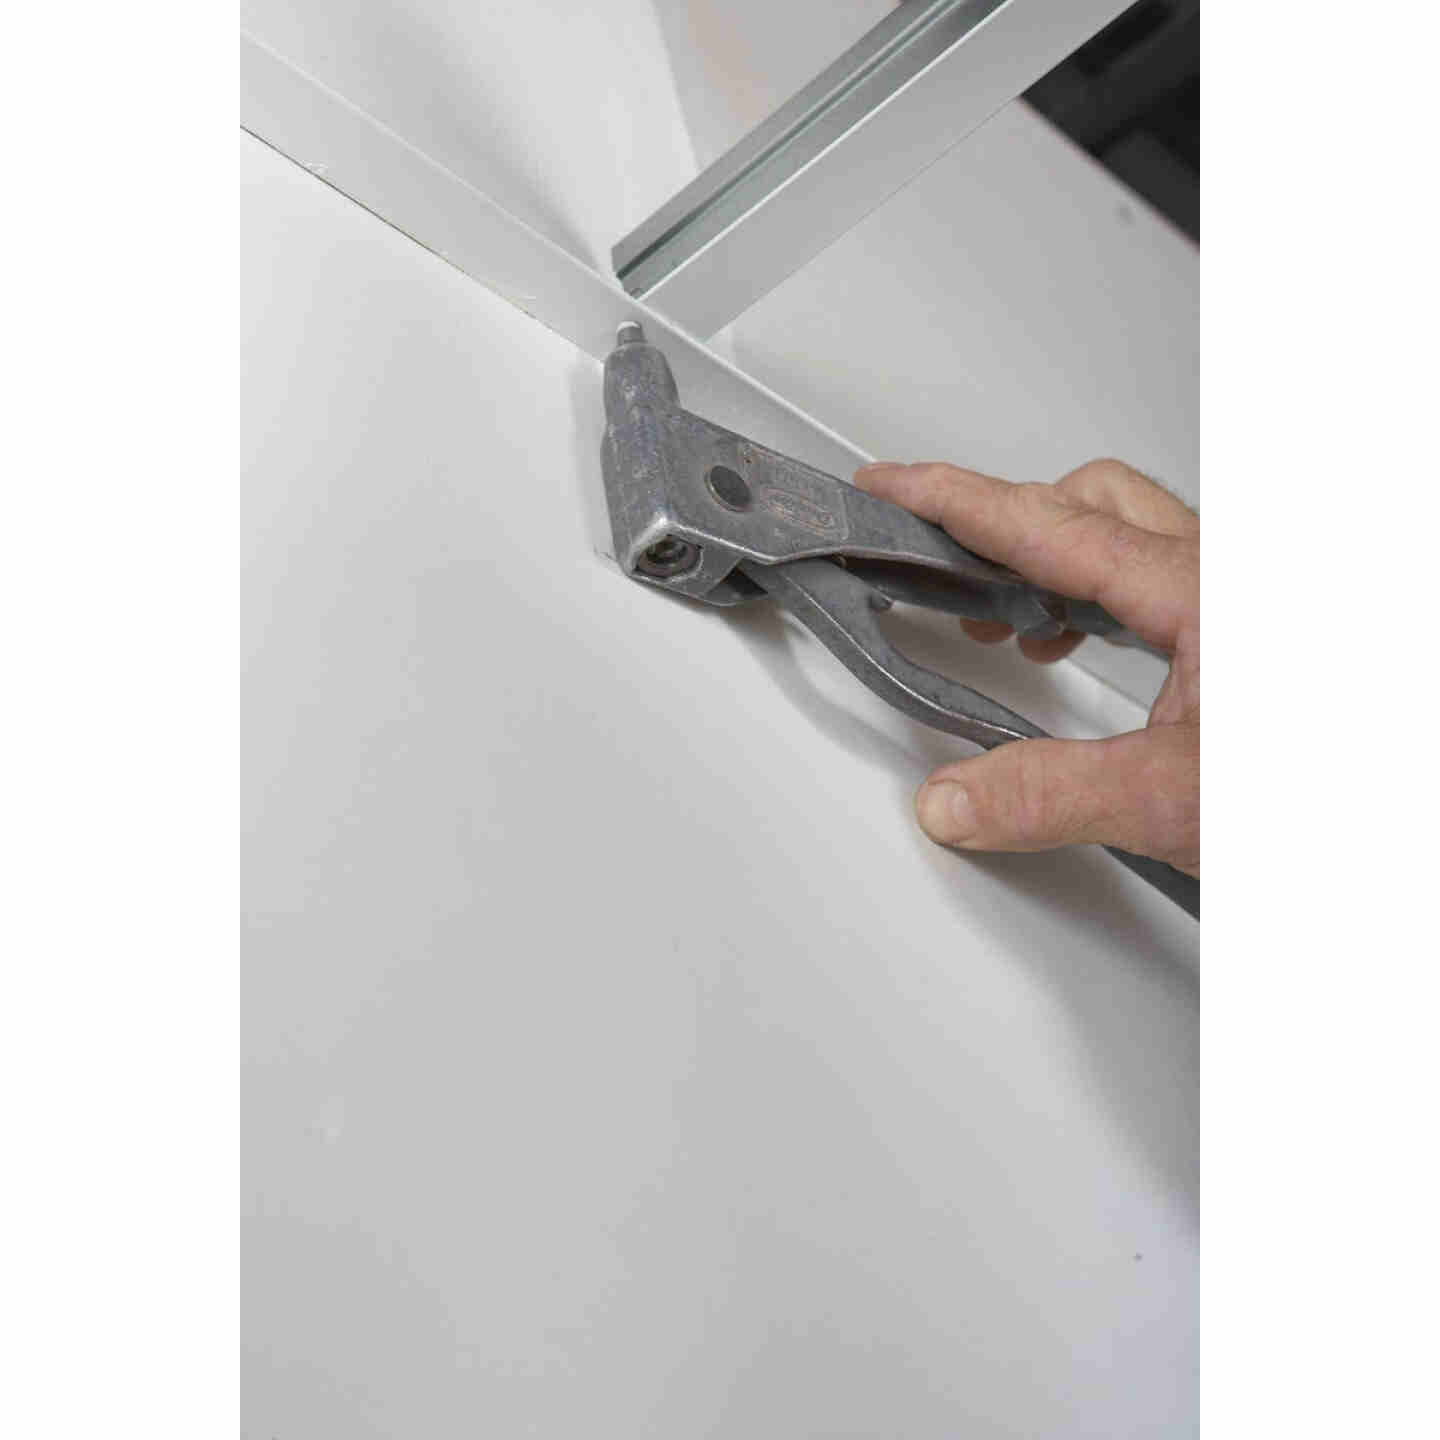 Donn 12 Ft. x 7/8 in. White Steel Ceiling Wall Molding Image 5